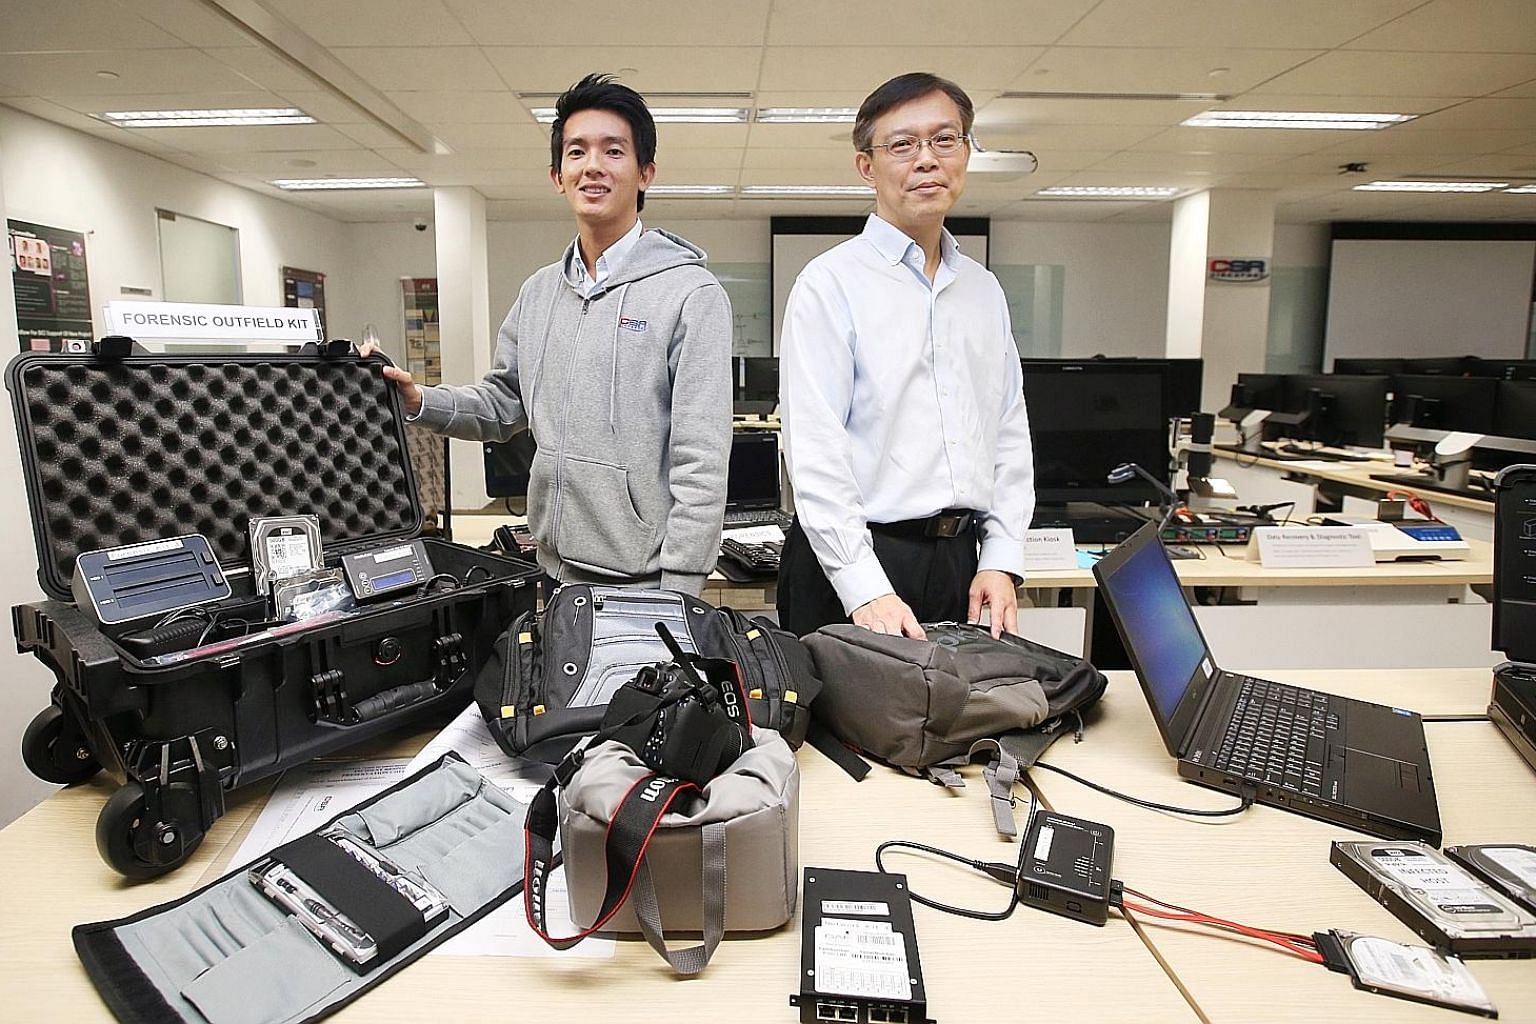 CSA National Cyber Incident Response Centre director Dan Yock Hau (right) and CSA senior consultant Lin Weiqiang with the forensic toolkits used to gather evidence at SingHealth's premises on the day of the attack. The equipment allows investigators